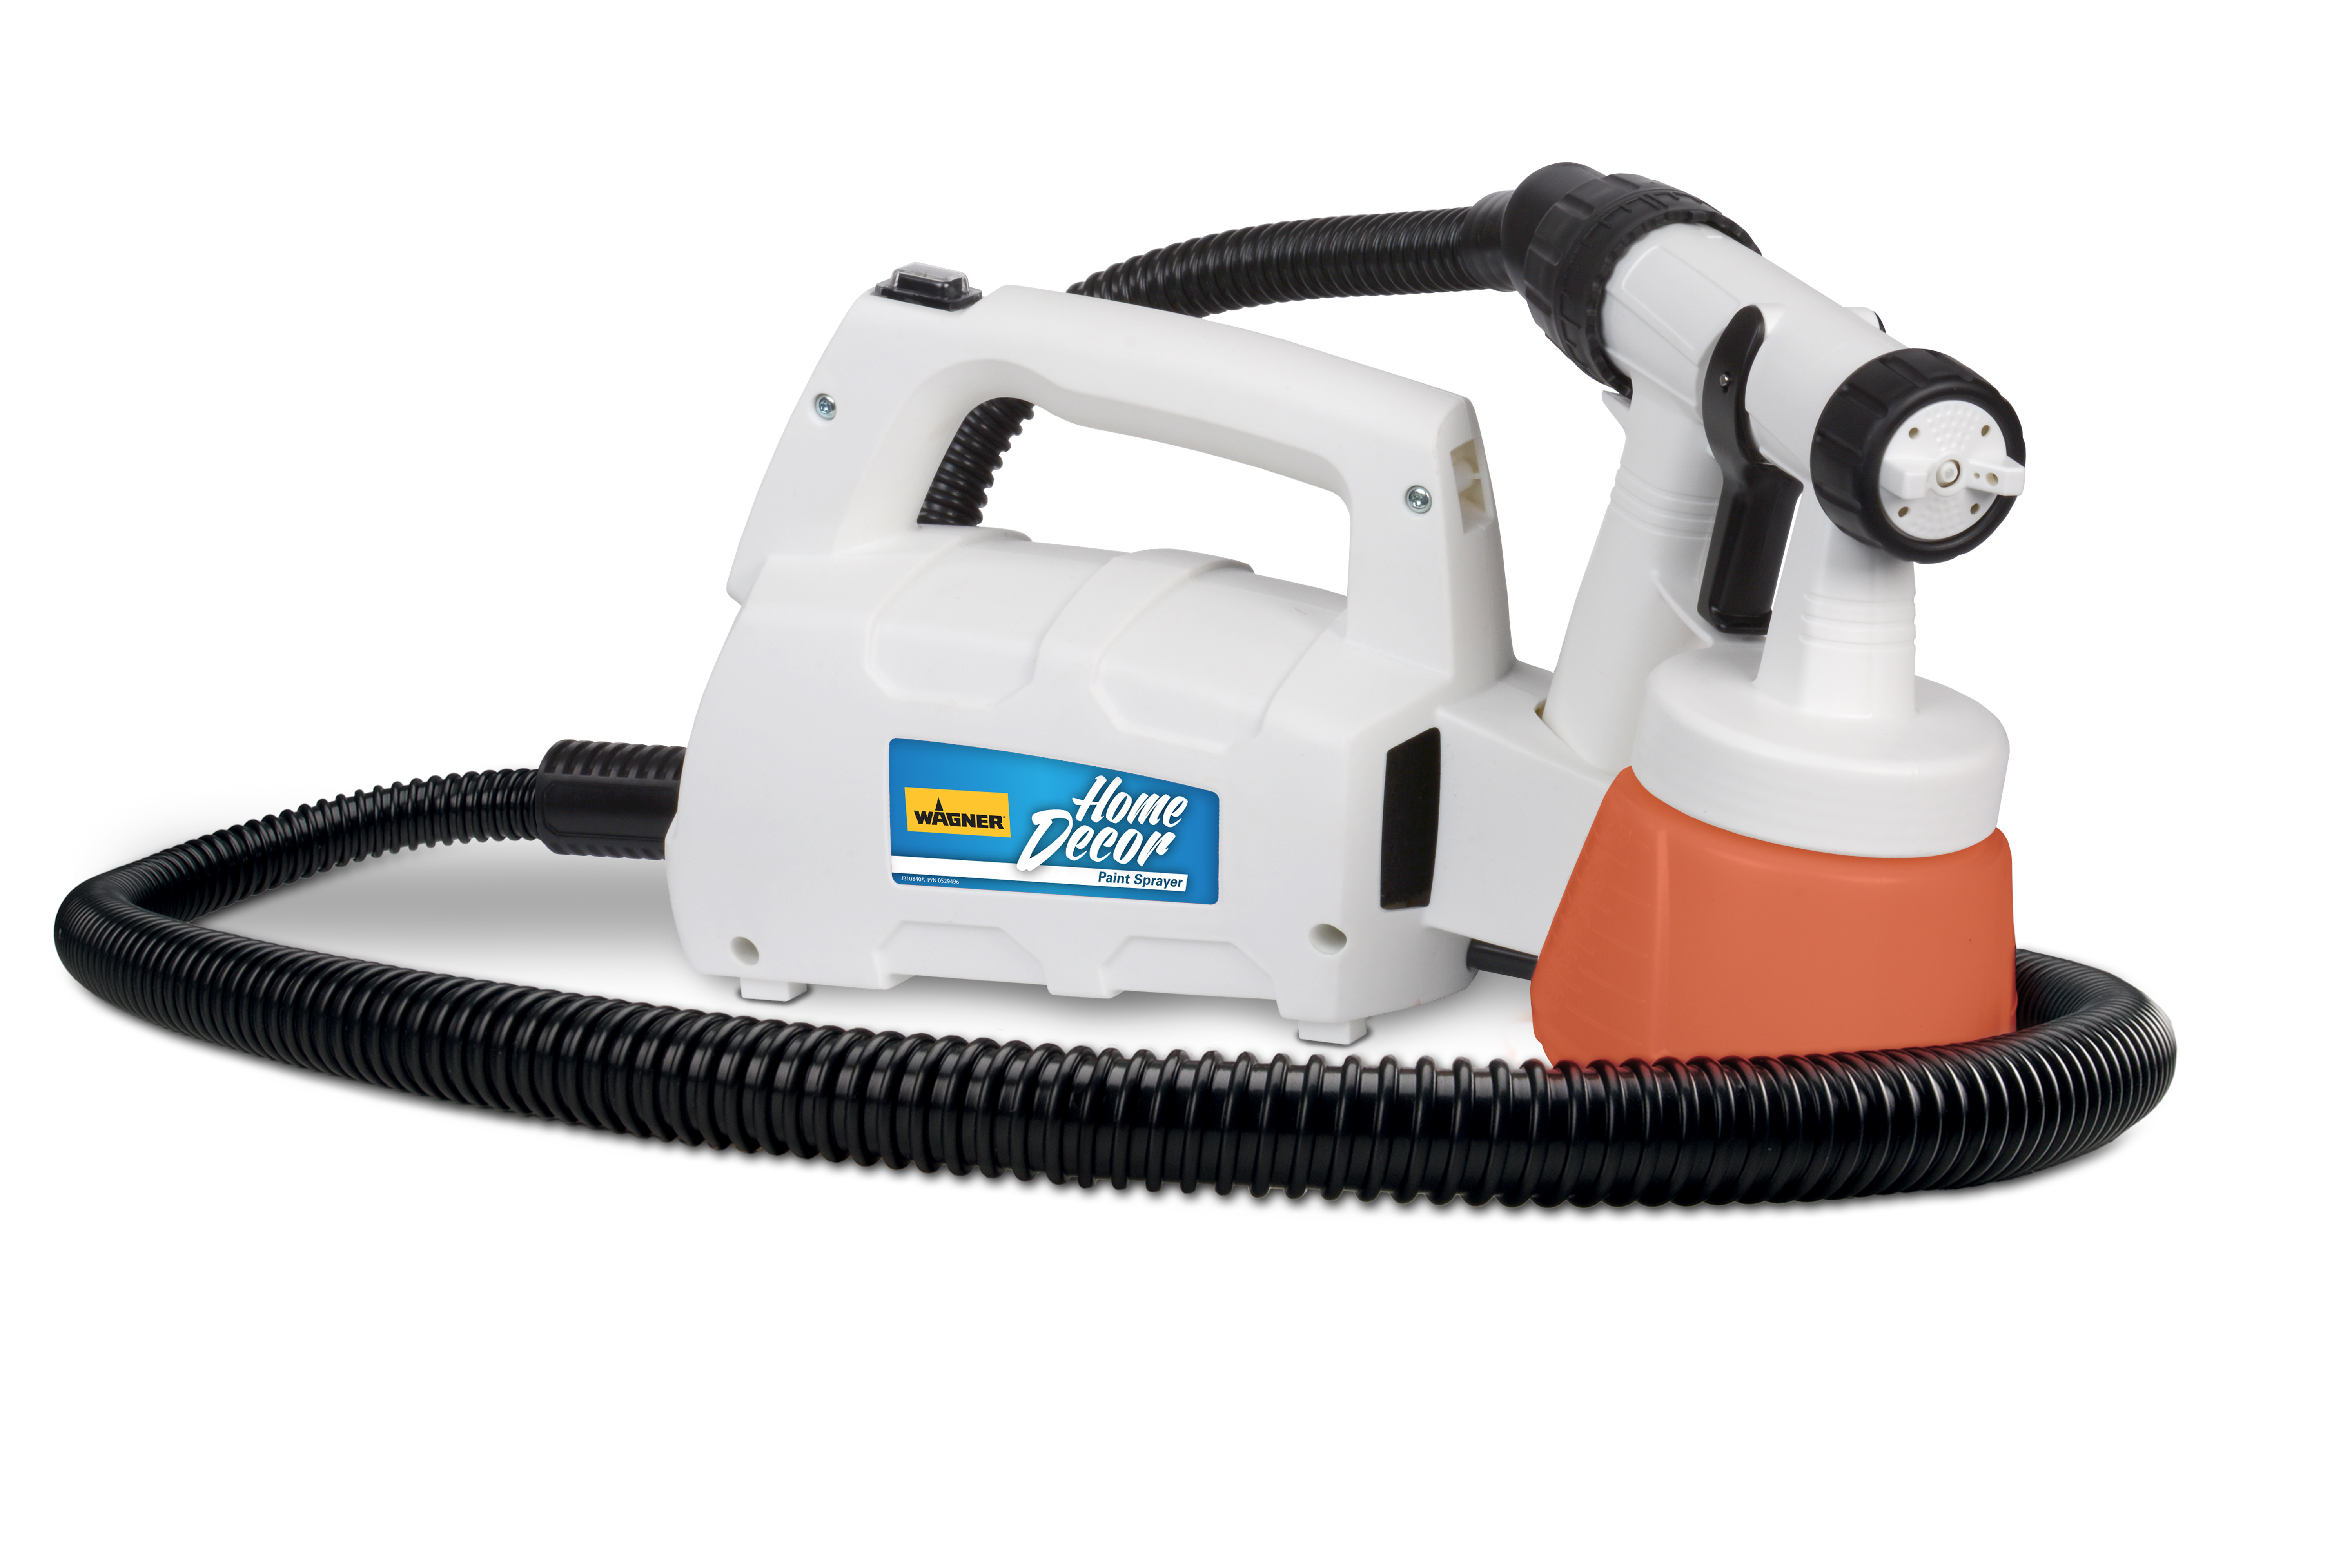 Wagner Home Decor Paint Sprayer by Wagner SprayTech Corporation